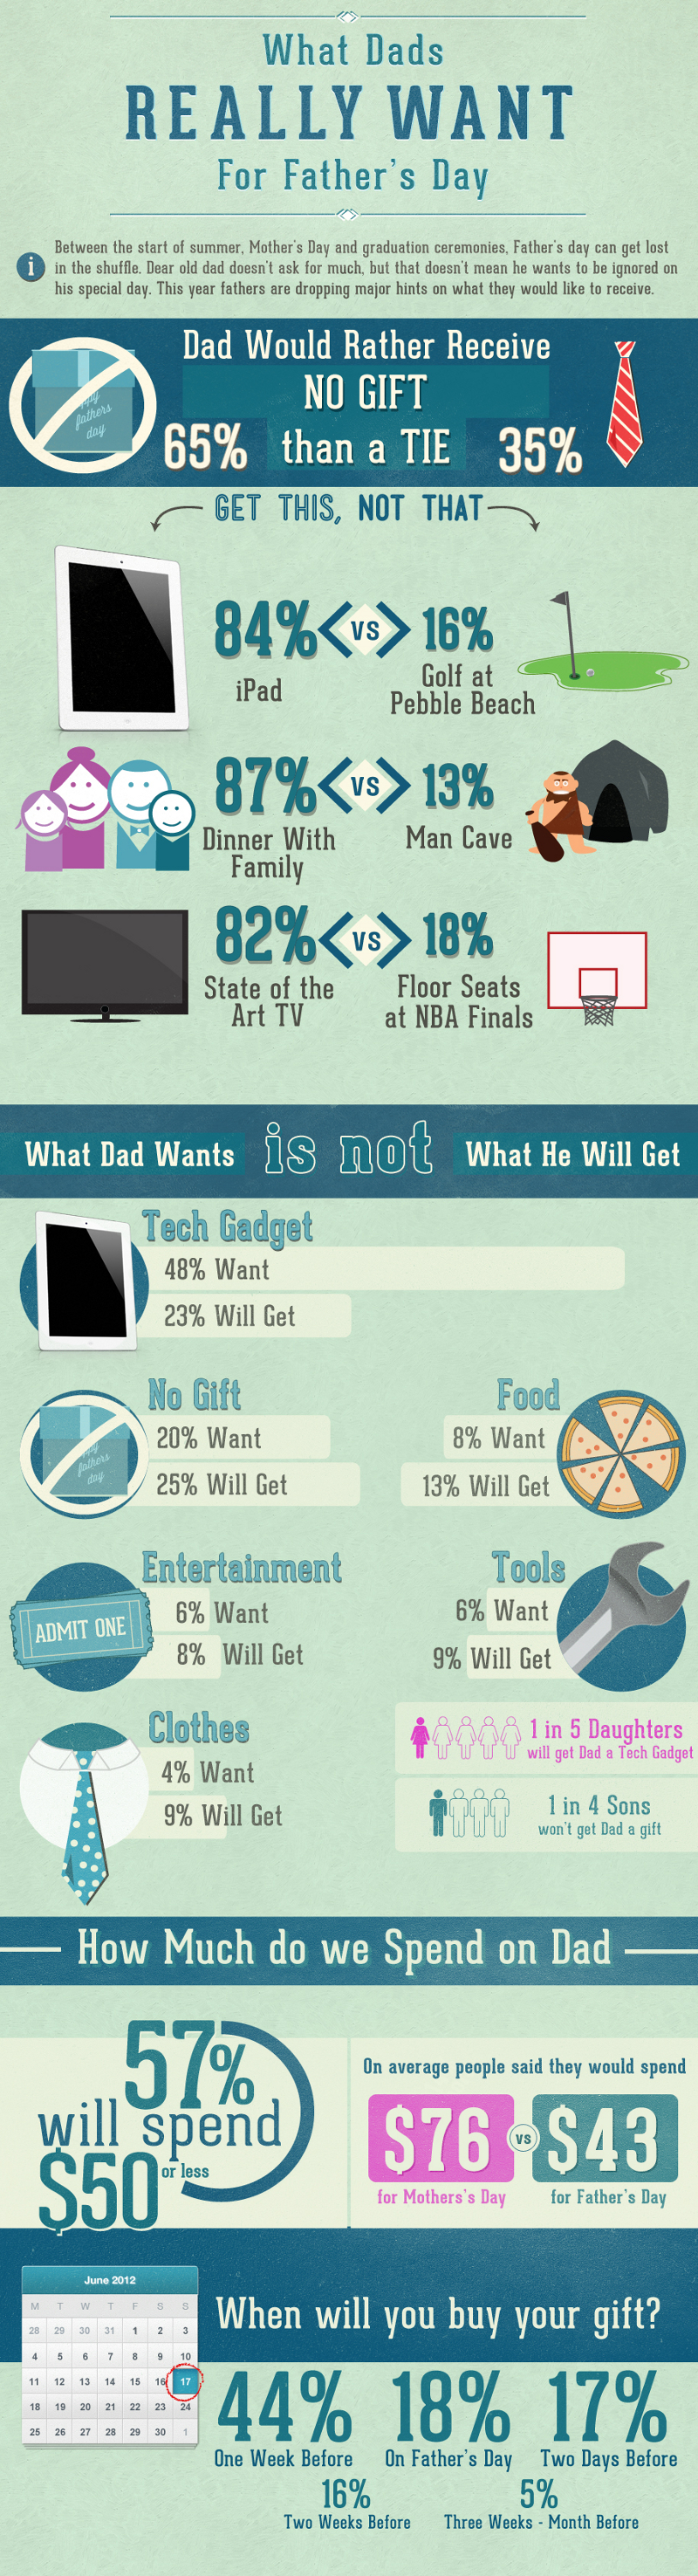 Fathers Day Gift Trends